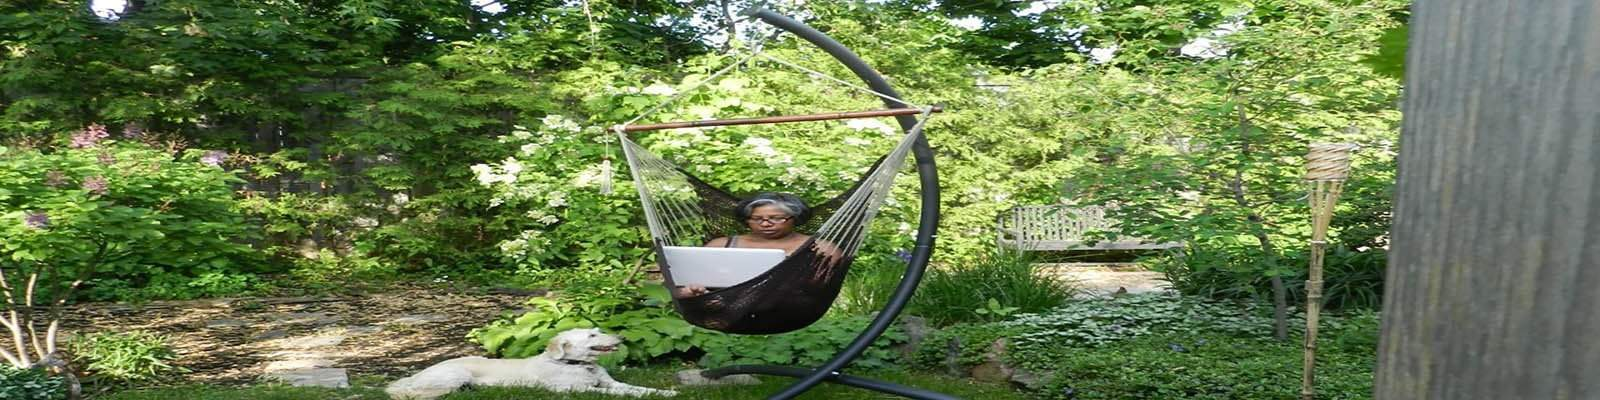 Hammock Chairs with Stands